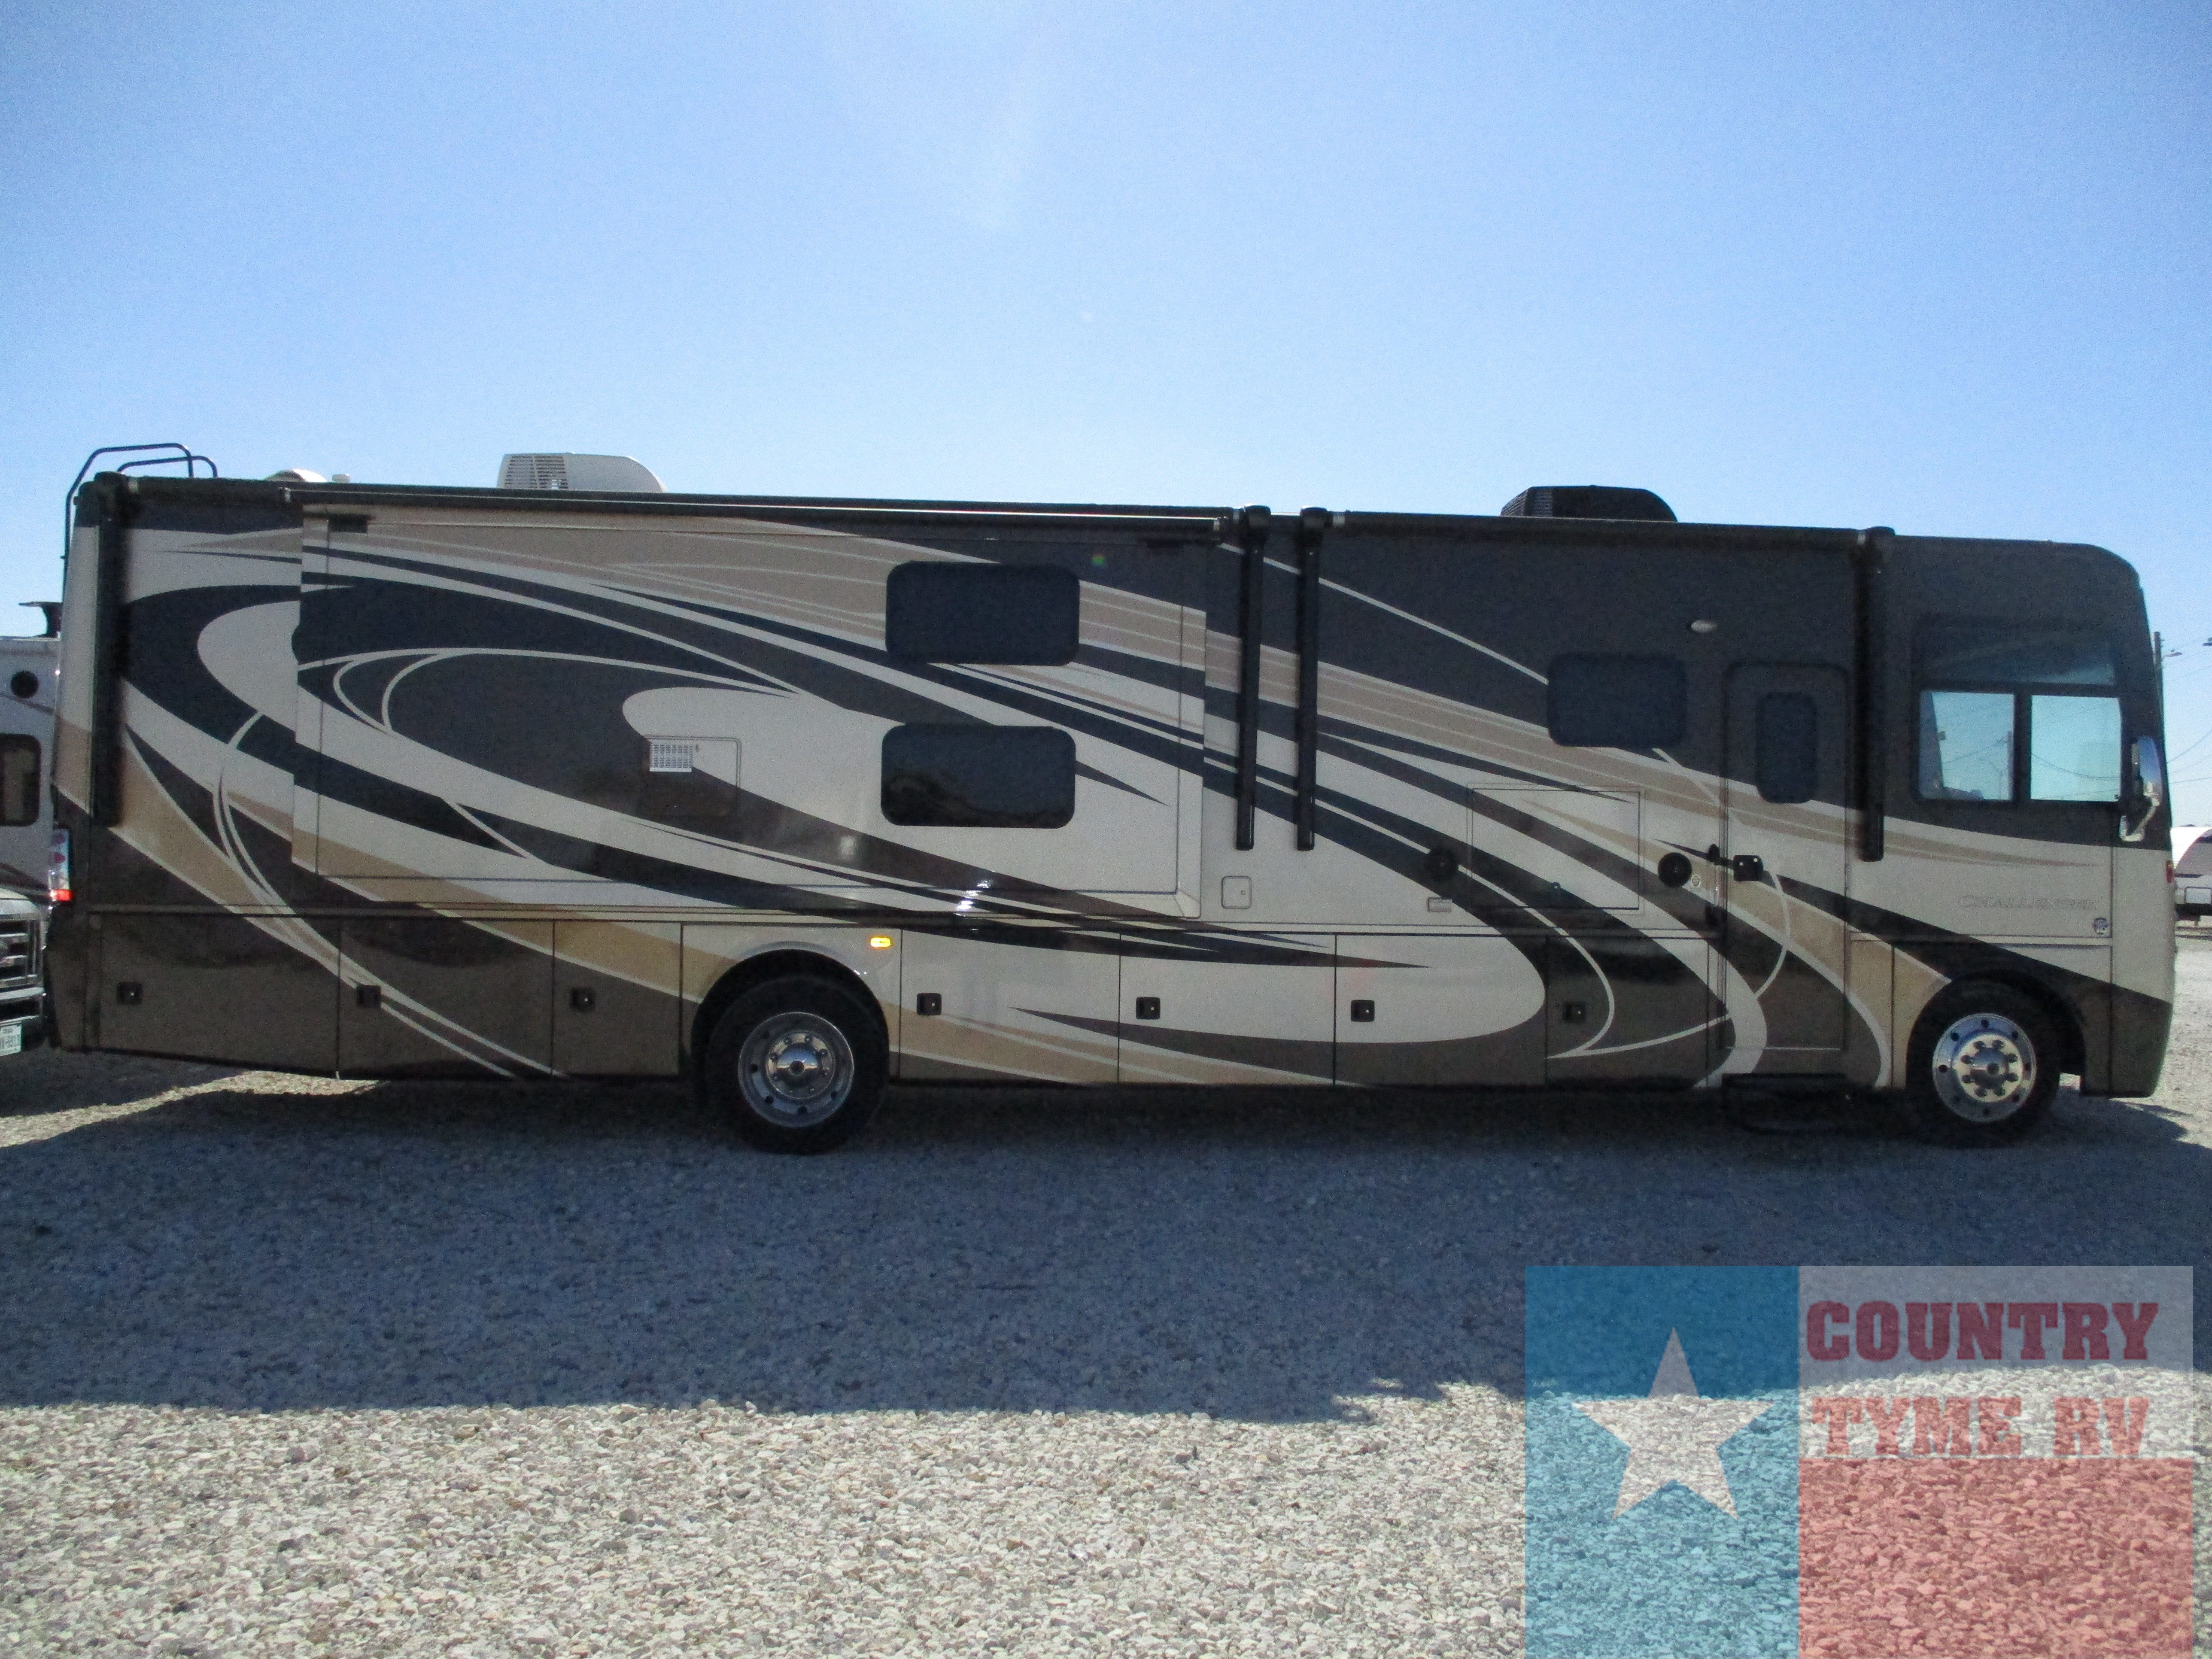 Used, 2016, Thor Motor Coach, Challenger 37TB Bunkhouse, RV - Class A